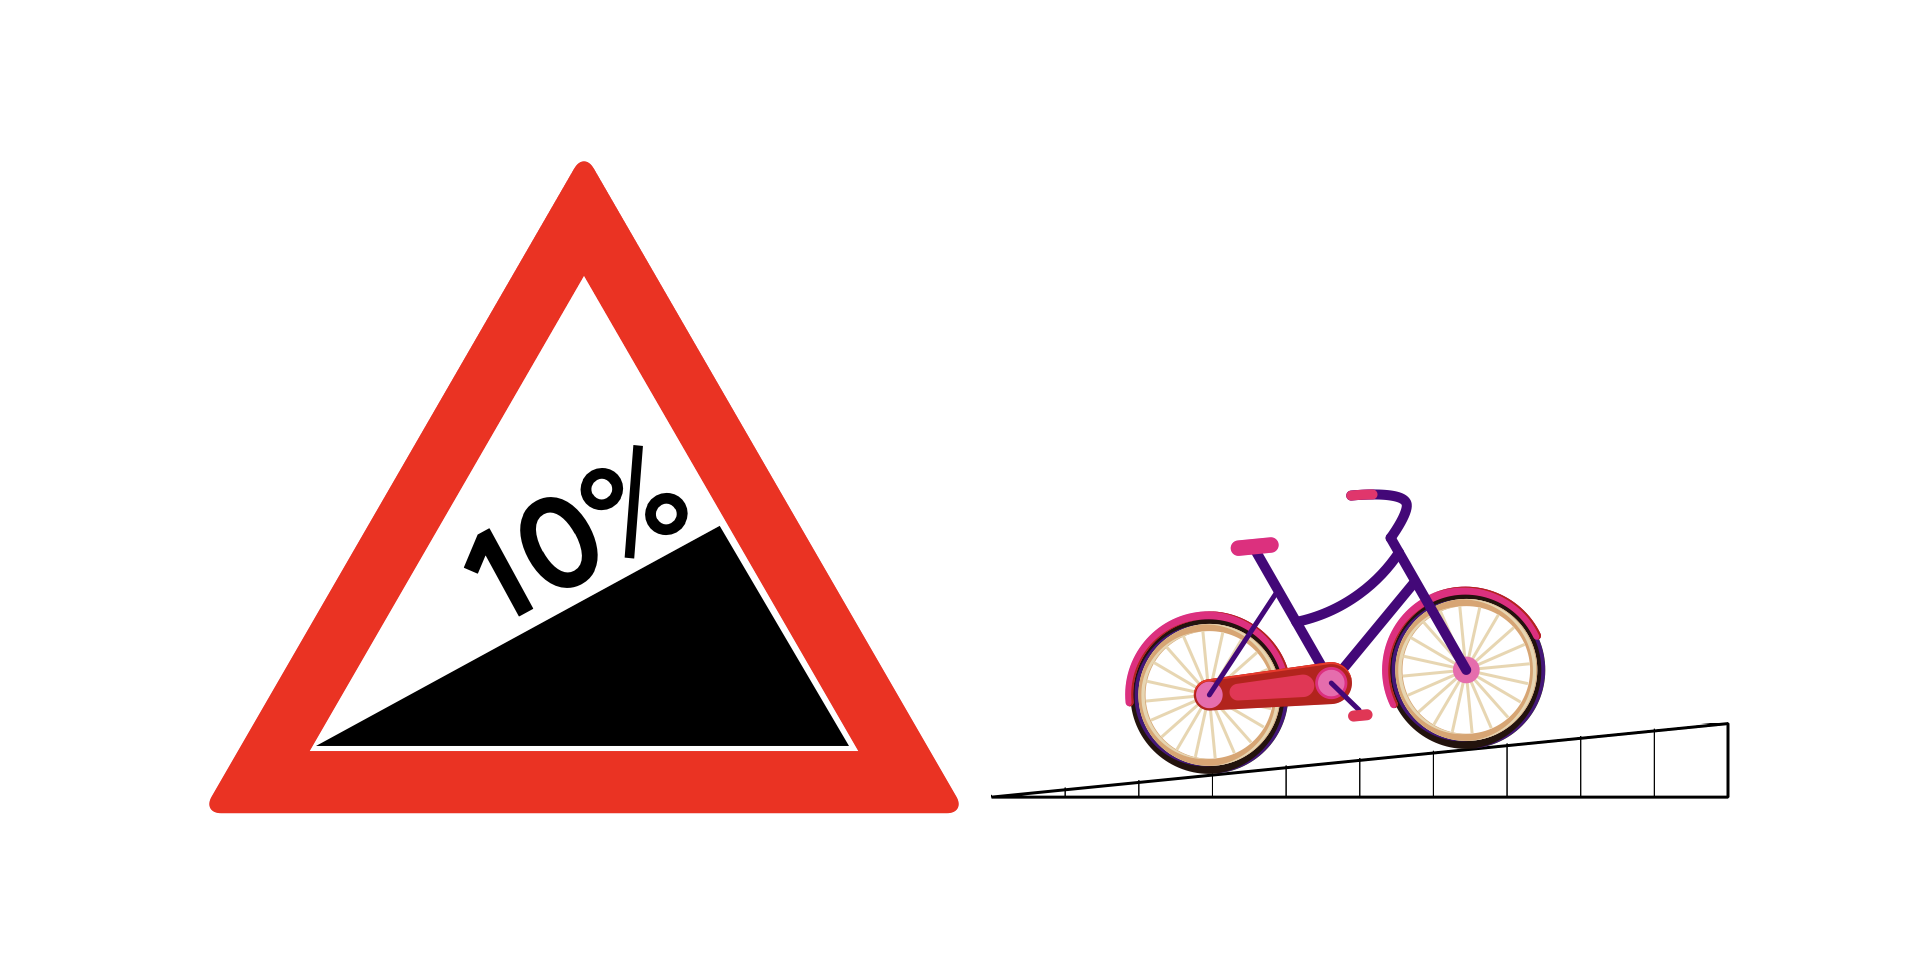 On the left there is a British road sign for steepness, this is a red equal sided triangle, with a white triangle centre, this has 10% in black text above a black triangle which fits within the white centre and fit half of the centre on the right and slopes down to the bottom of the white centre on the left. To the right of this is a another triangle of black grid lines which is half centimetre high on the left and slope down to the left and has a black, pink and purple image of a bicycle on top of the slope of the triangle grid